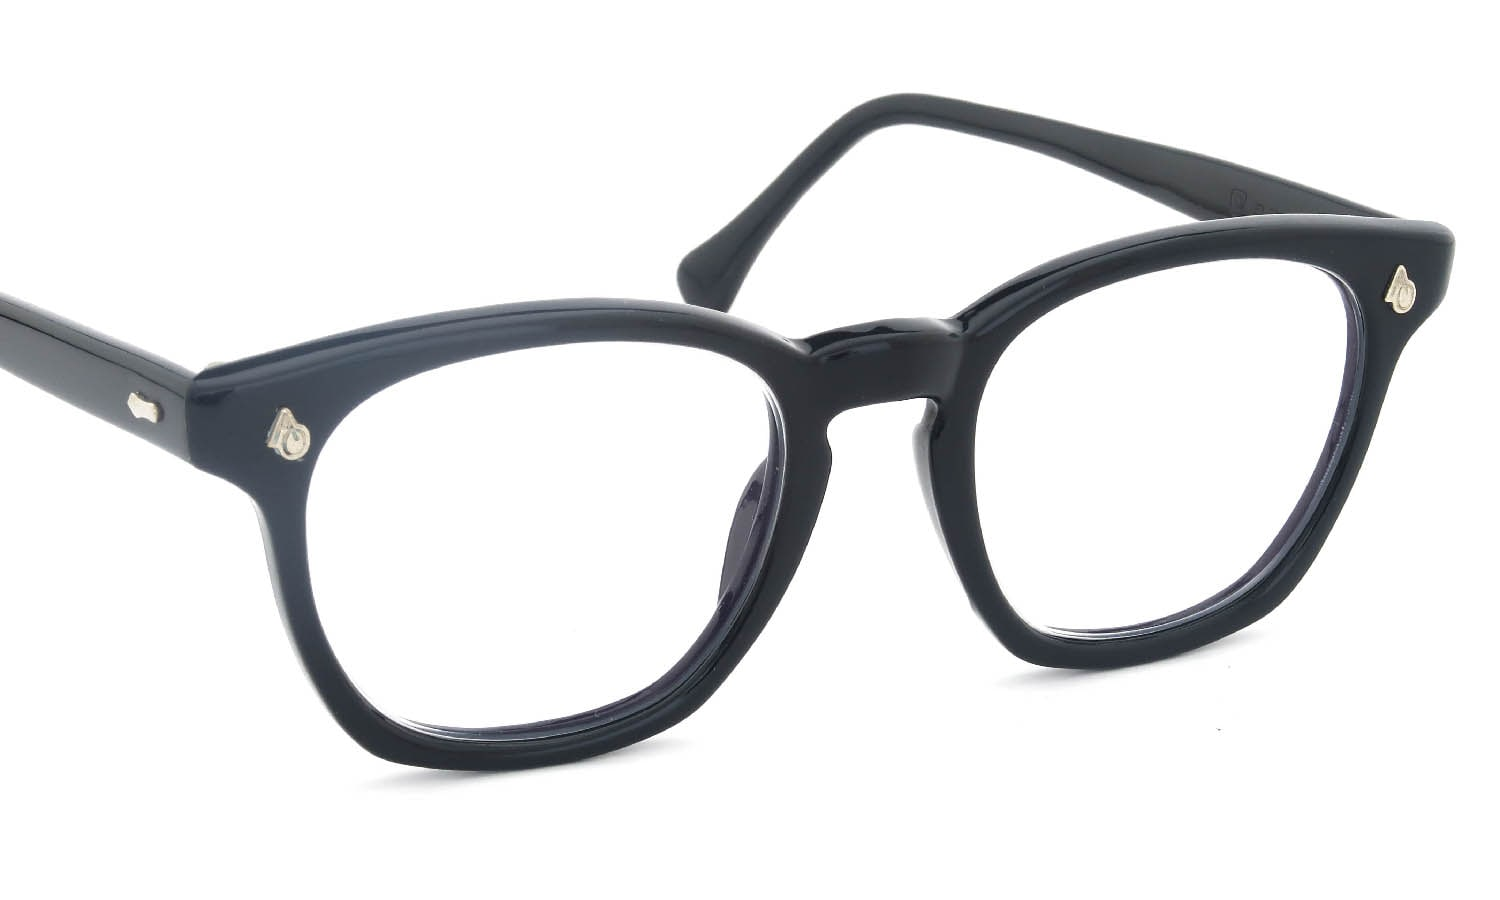 American Optical vintag Safety Glasses 1960s-1970s AO鋲 Square Black 48-20 FLEXI-FIT